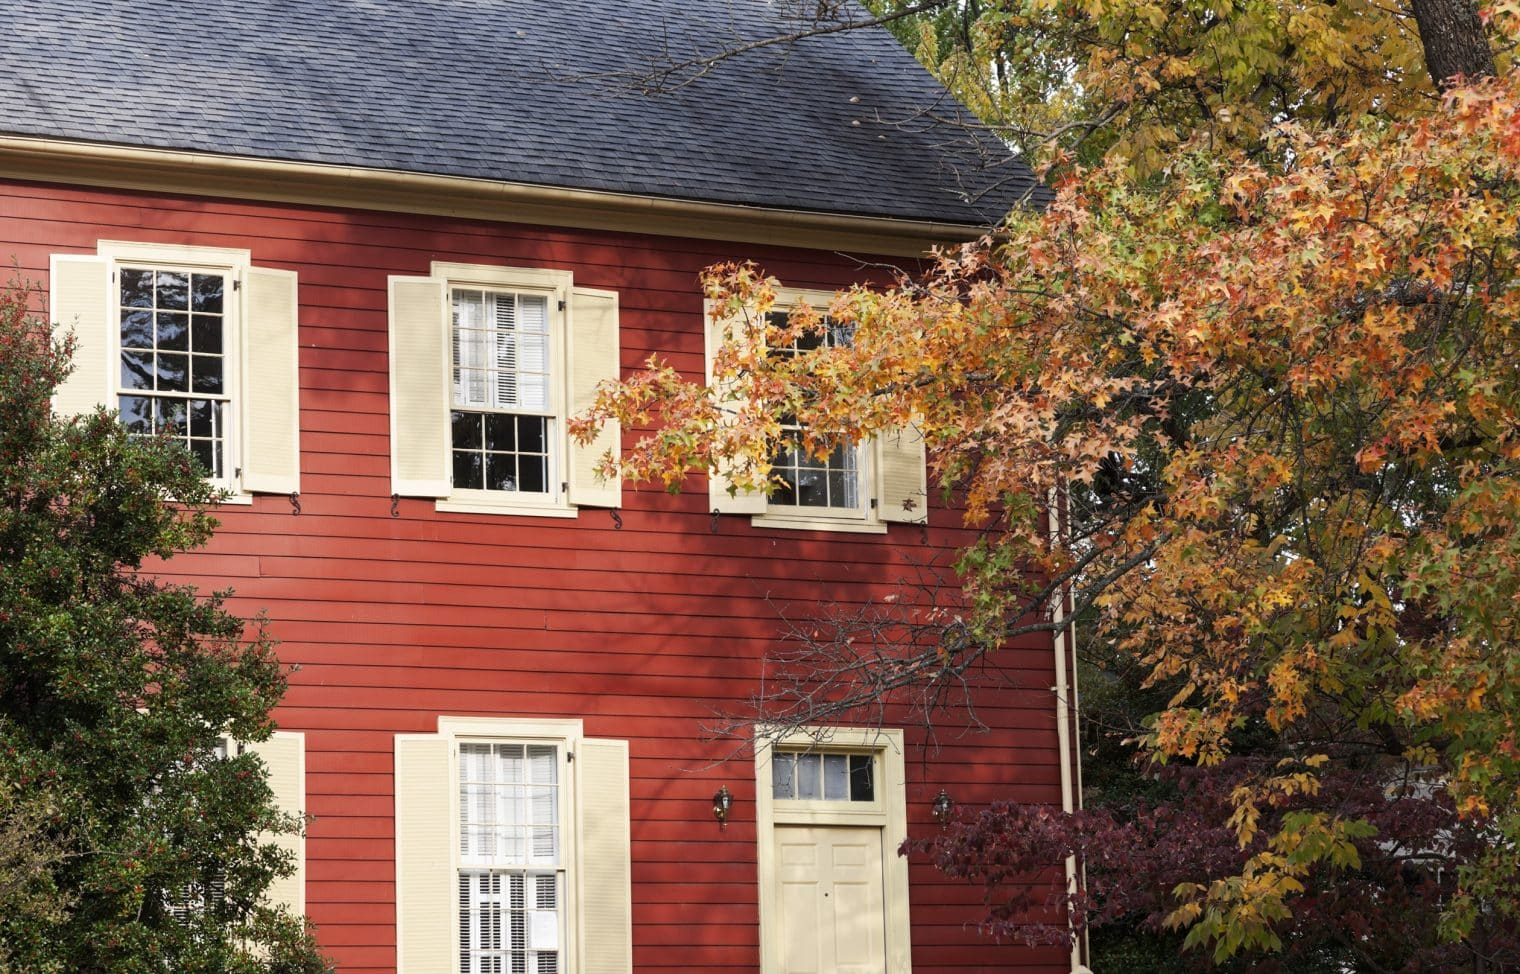 A close up of a red house. The house has white shutters and a dark gray roof. There is a tree change yellow leaves in front of the house.